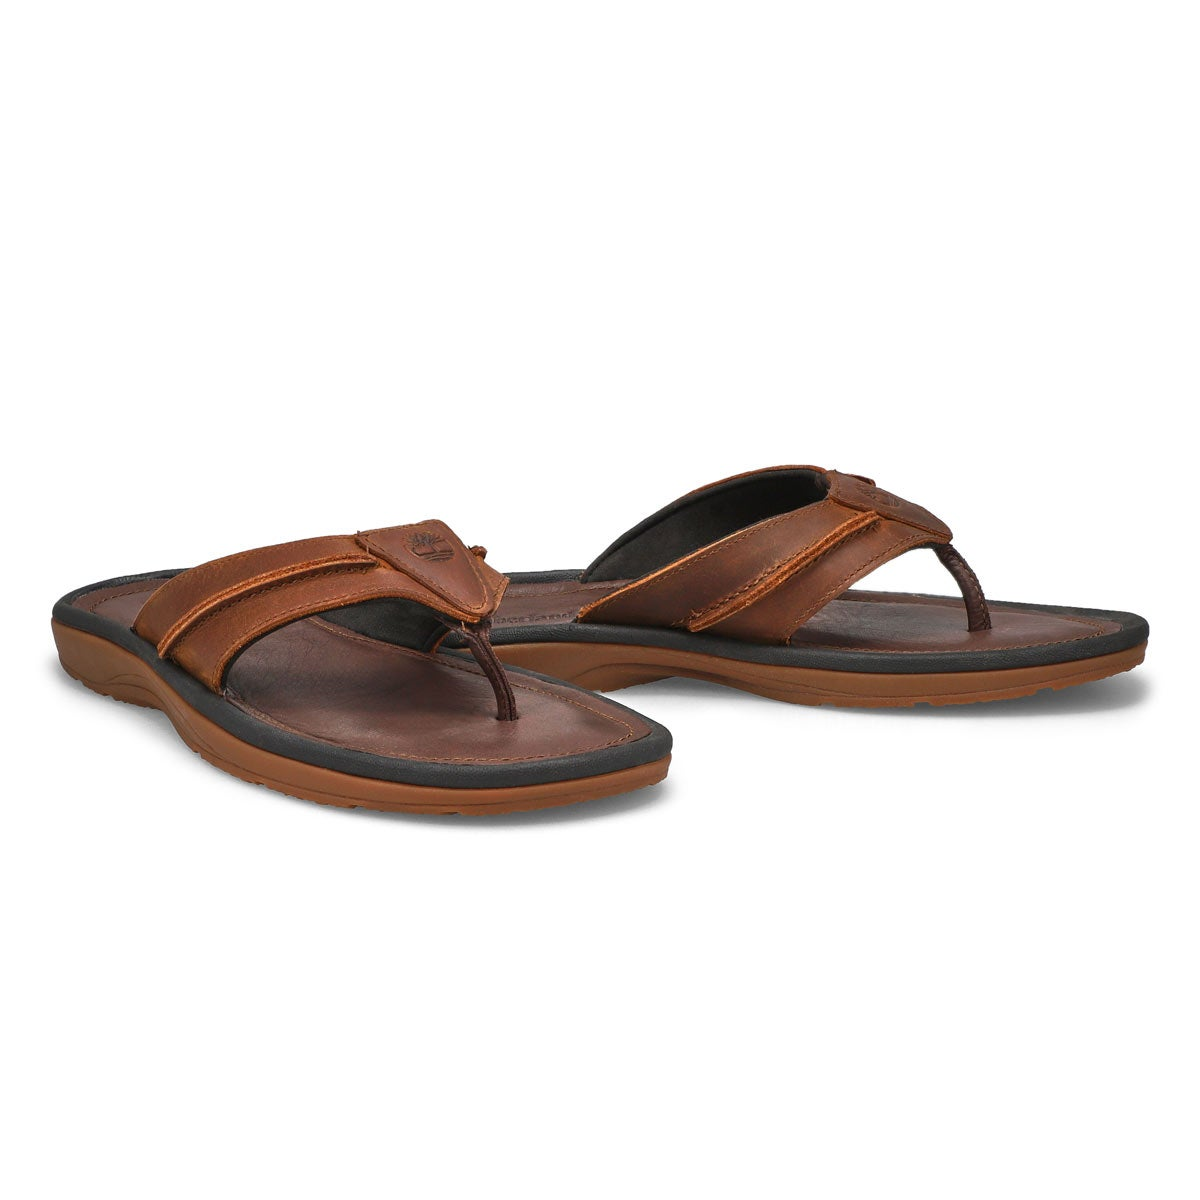 Mns Earthkeepers brn oiled thong sandal